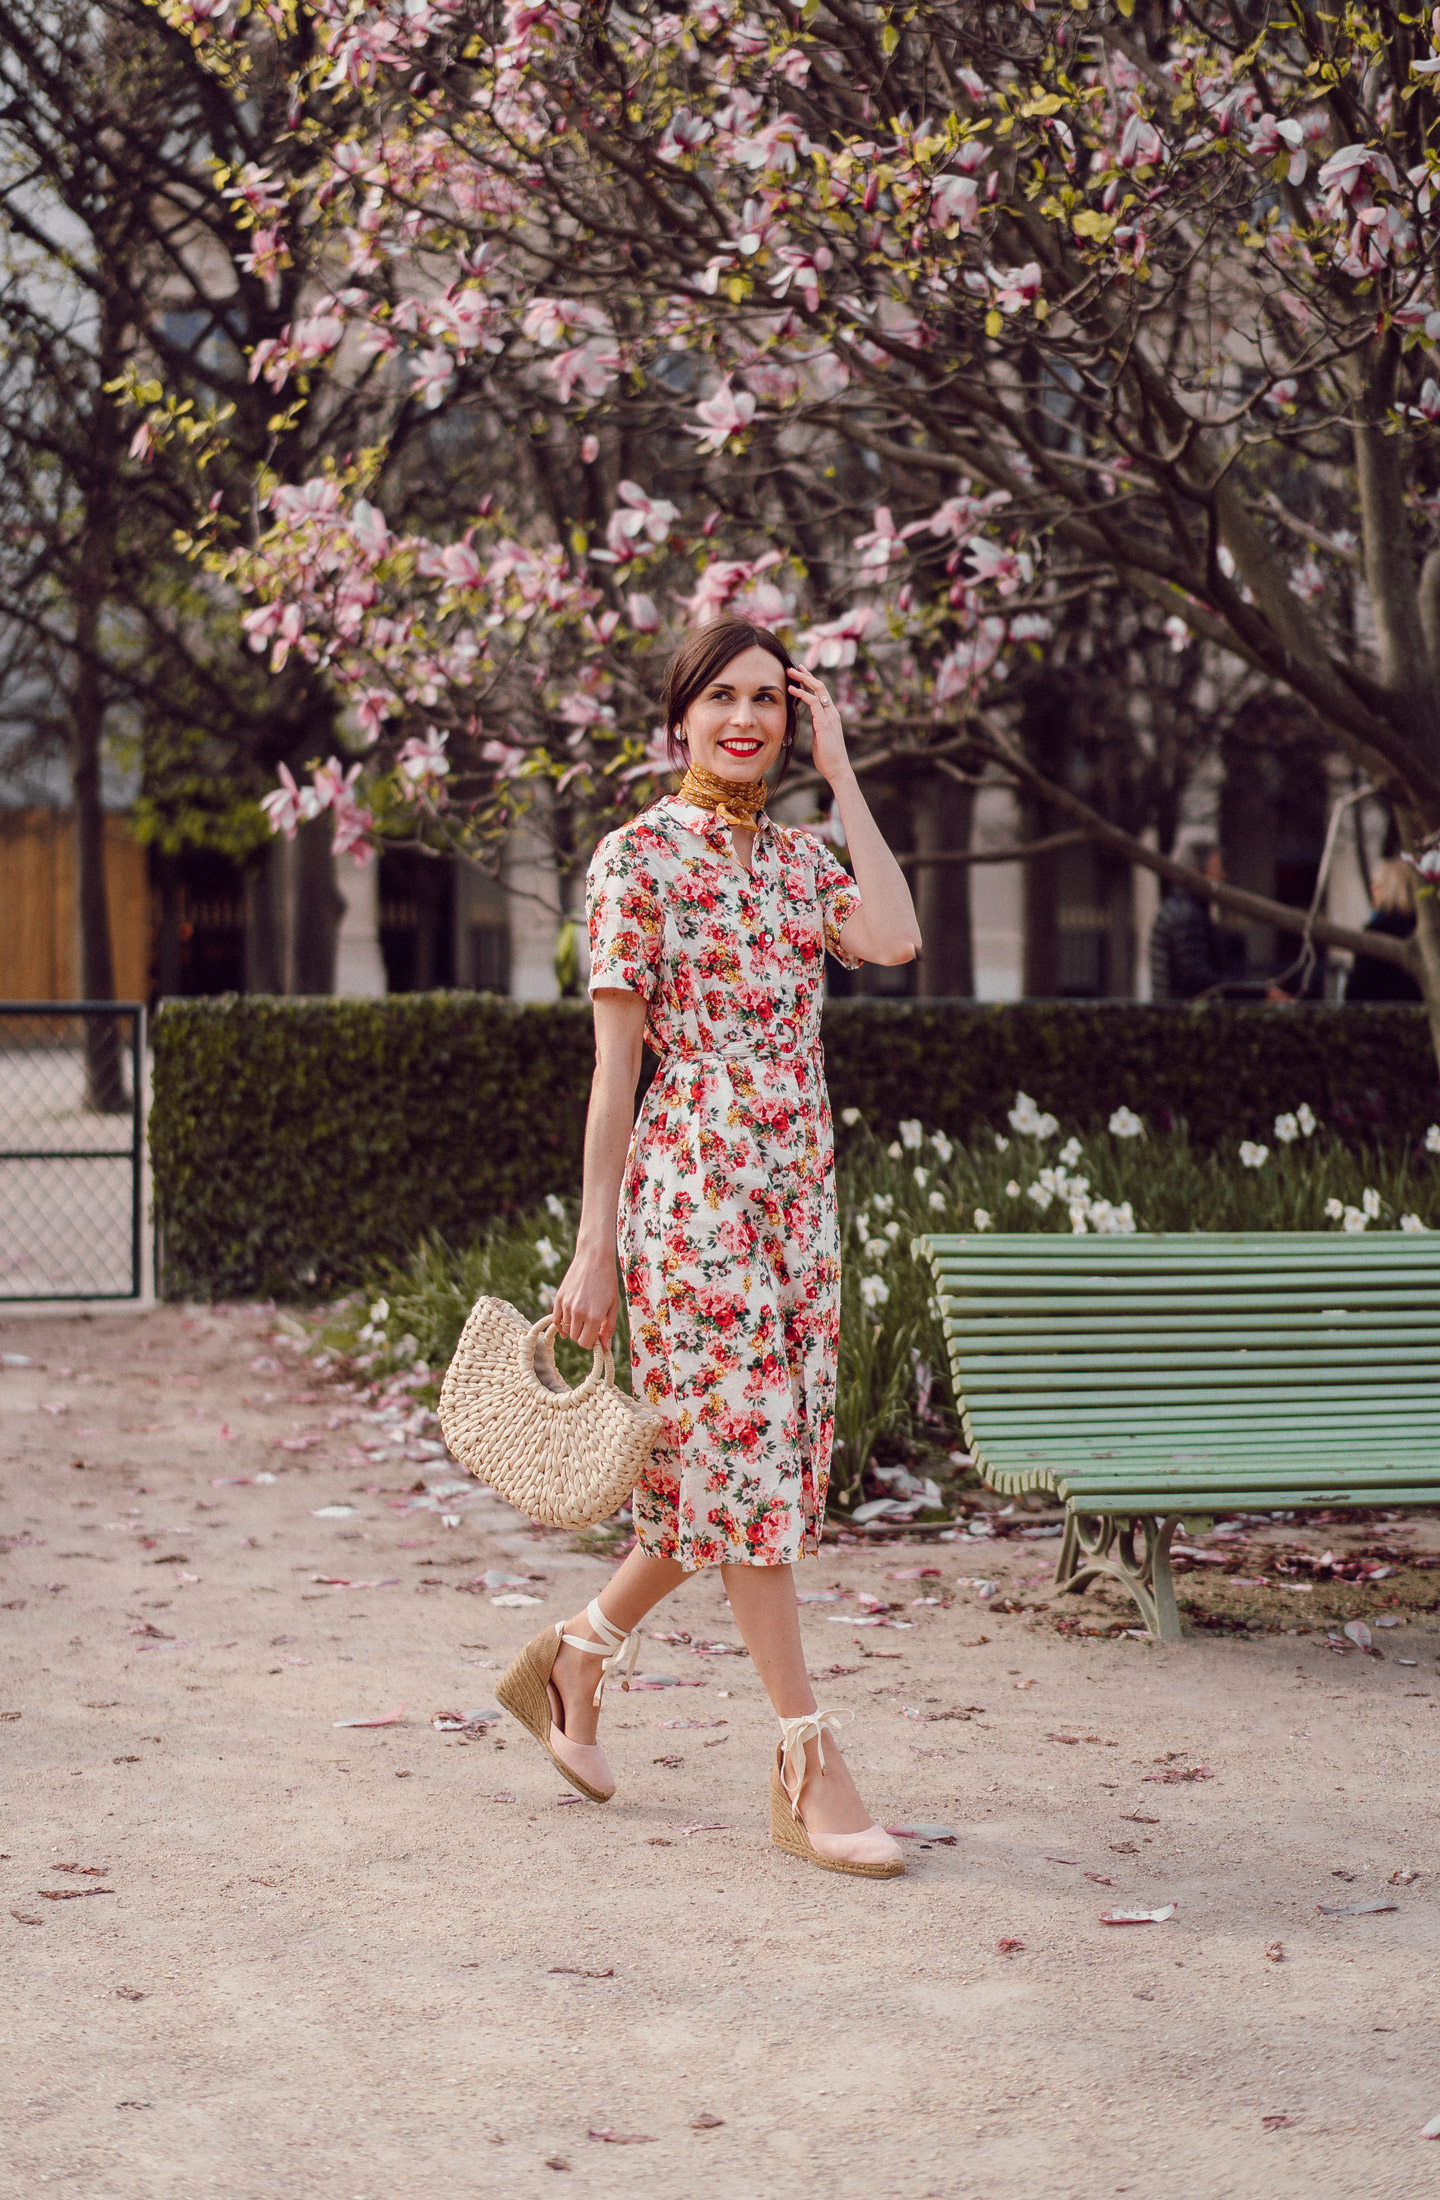 daphne-moreau-mode-and-the-city--palais-royal-robe-sezane-lexia-10